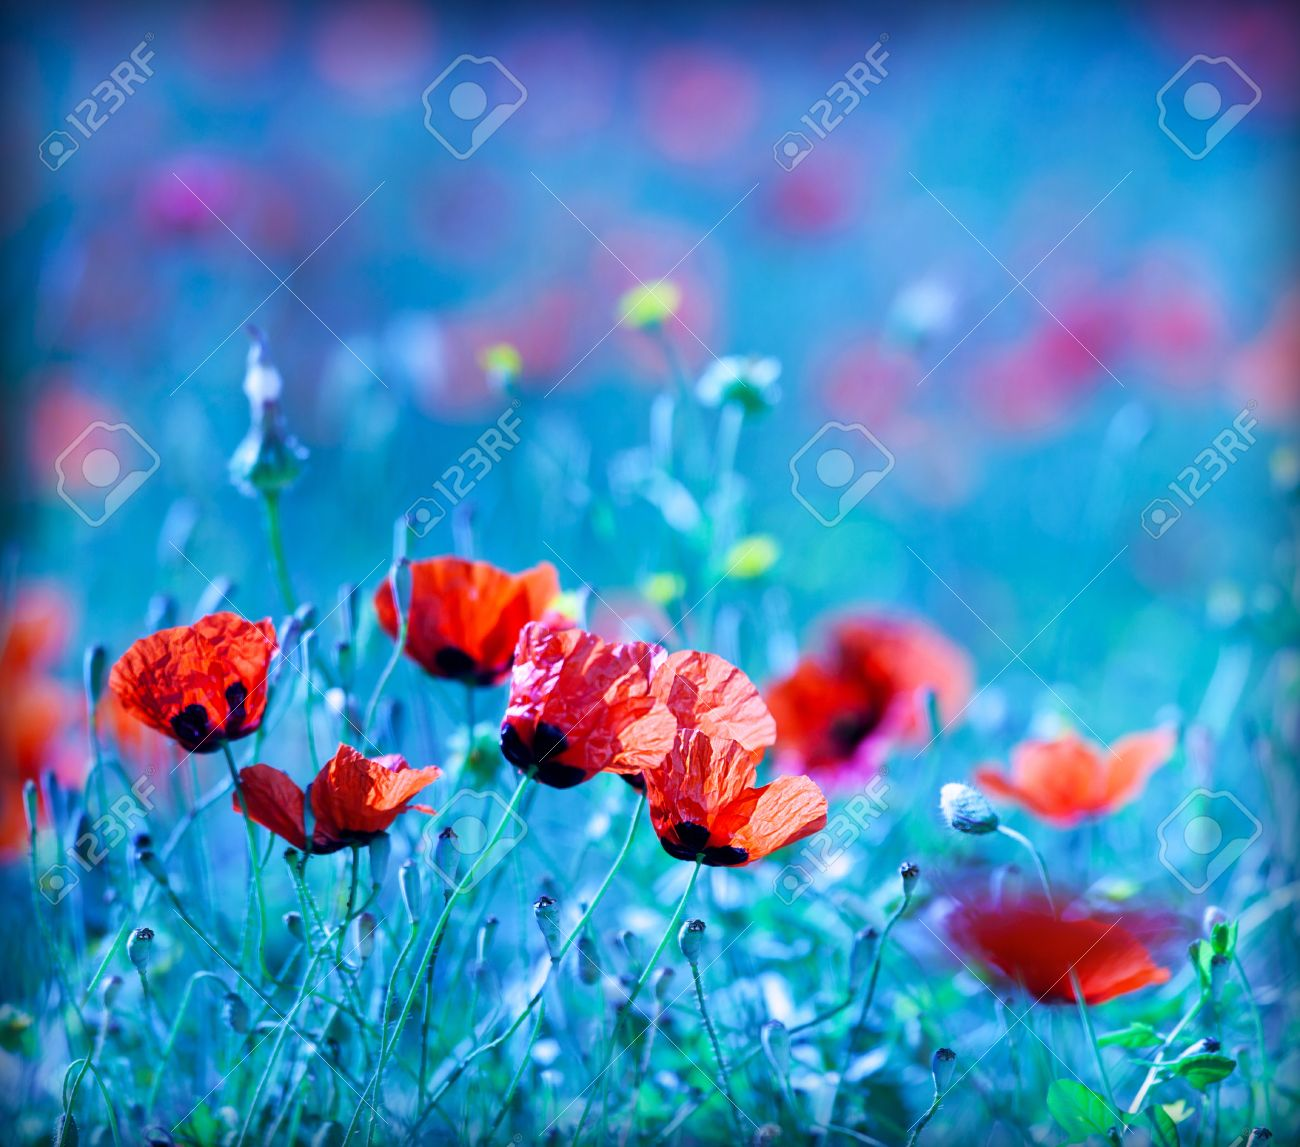 Poppy flower field at night royalty free stock photography image - Poppy Flower Field At Night With A Dreamy Blue Cast And Selective Soft Focus Natural